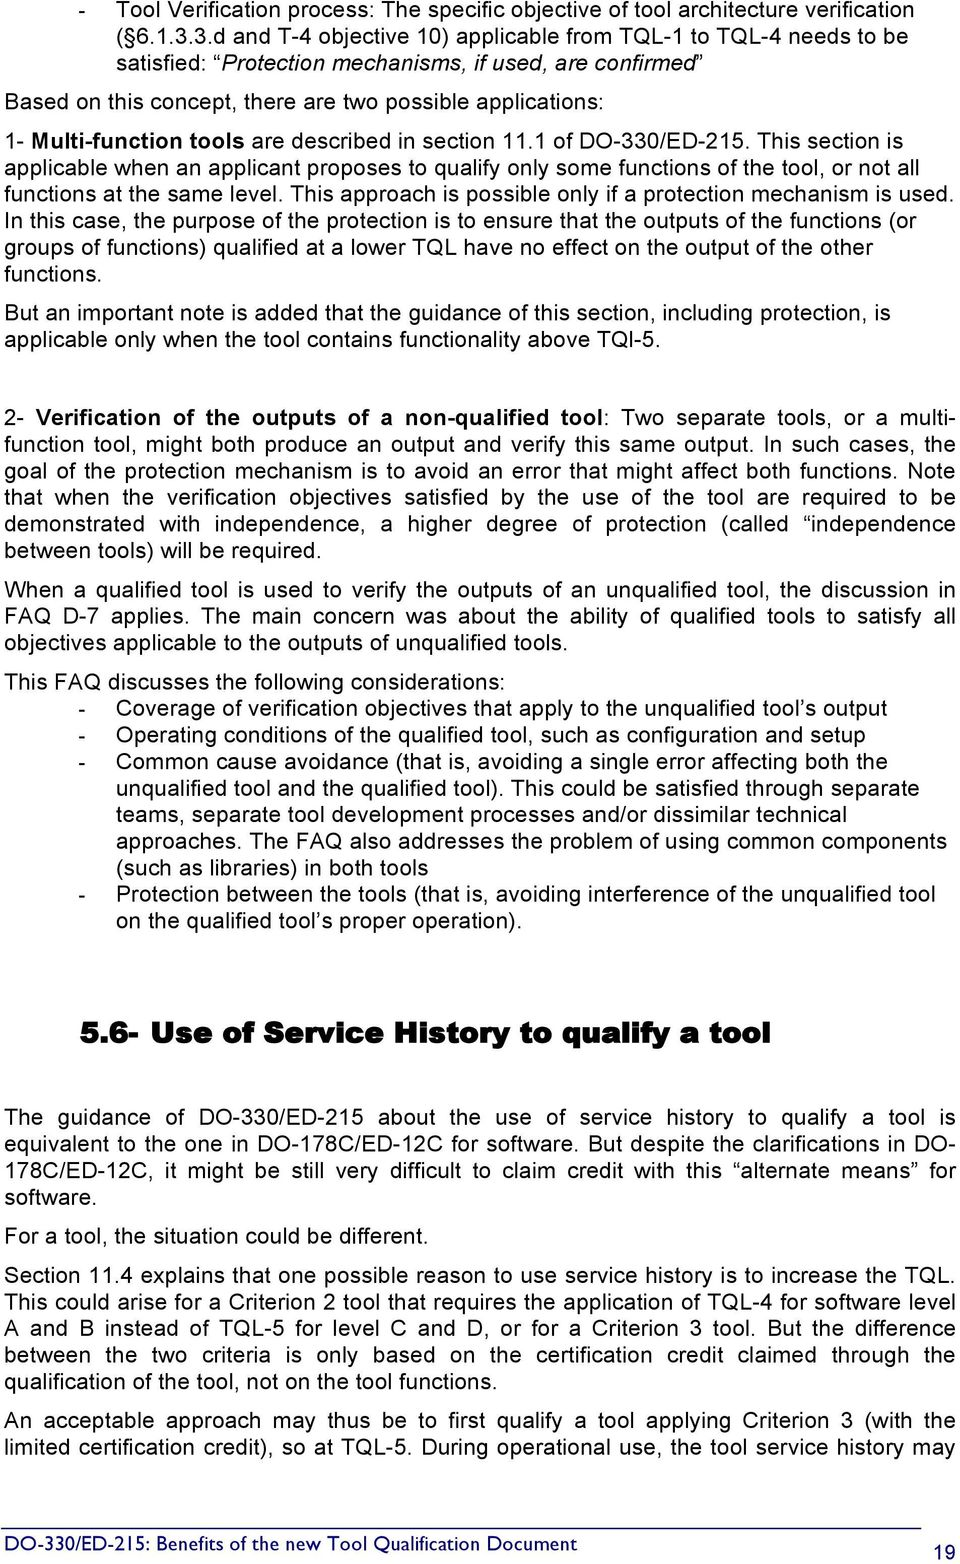 Multi-function tools are described in section 11.1 of DO-330/ED-215.